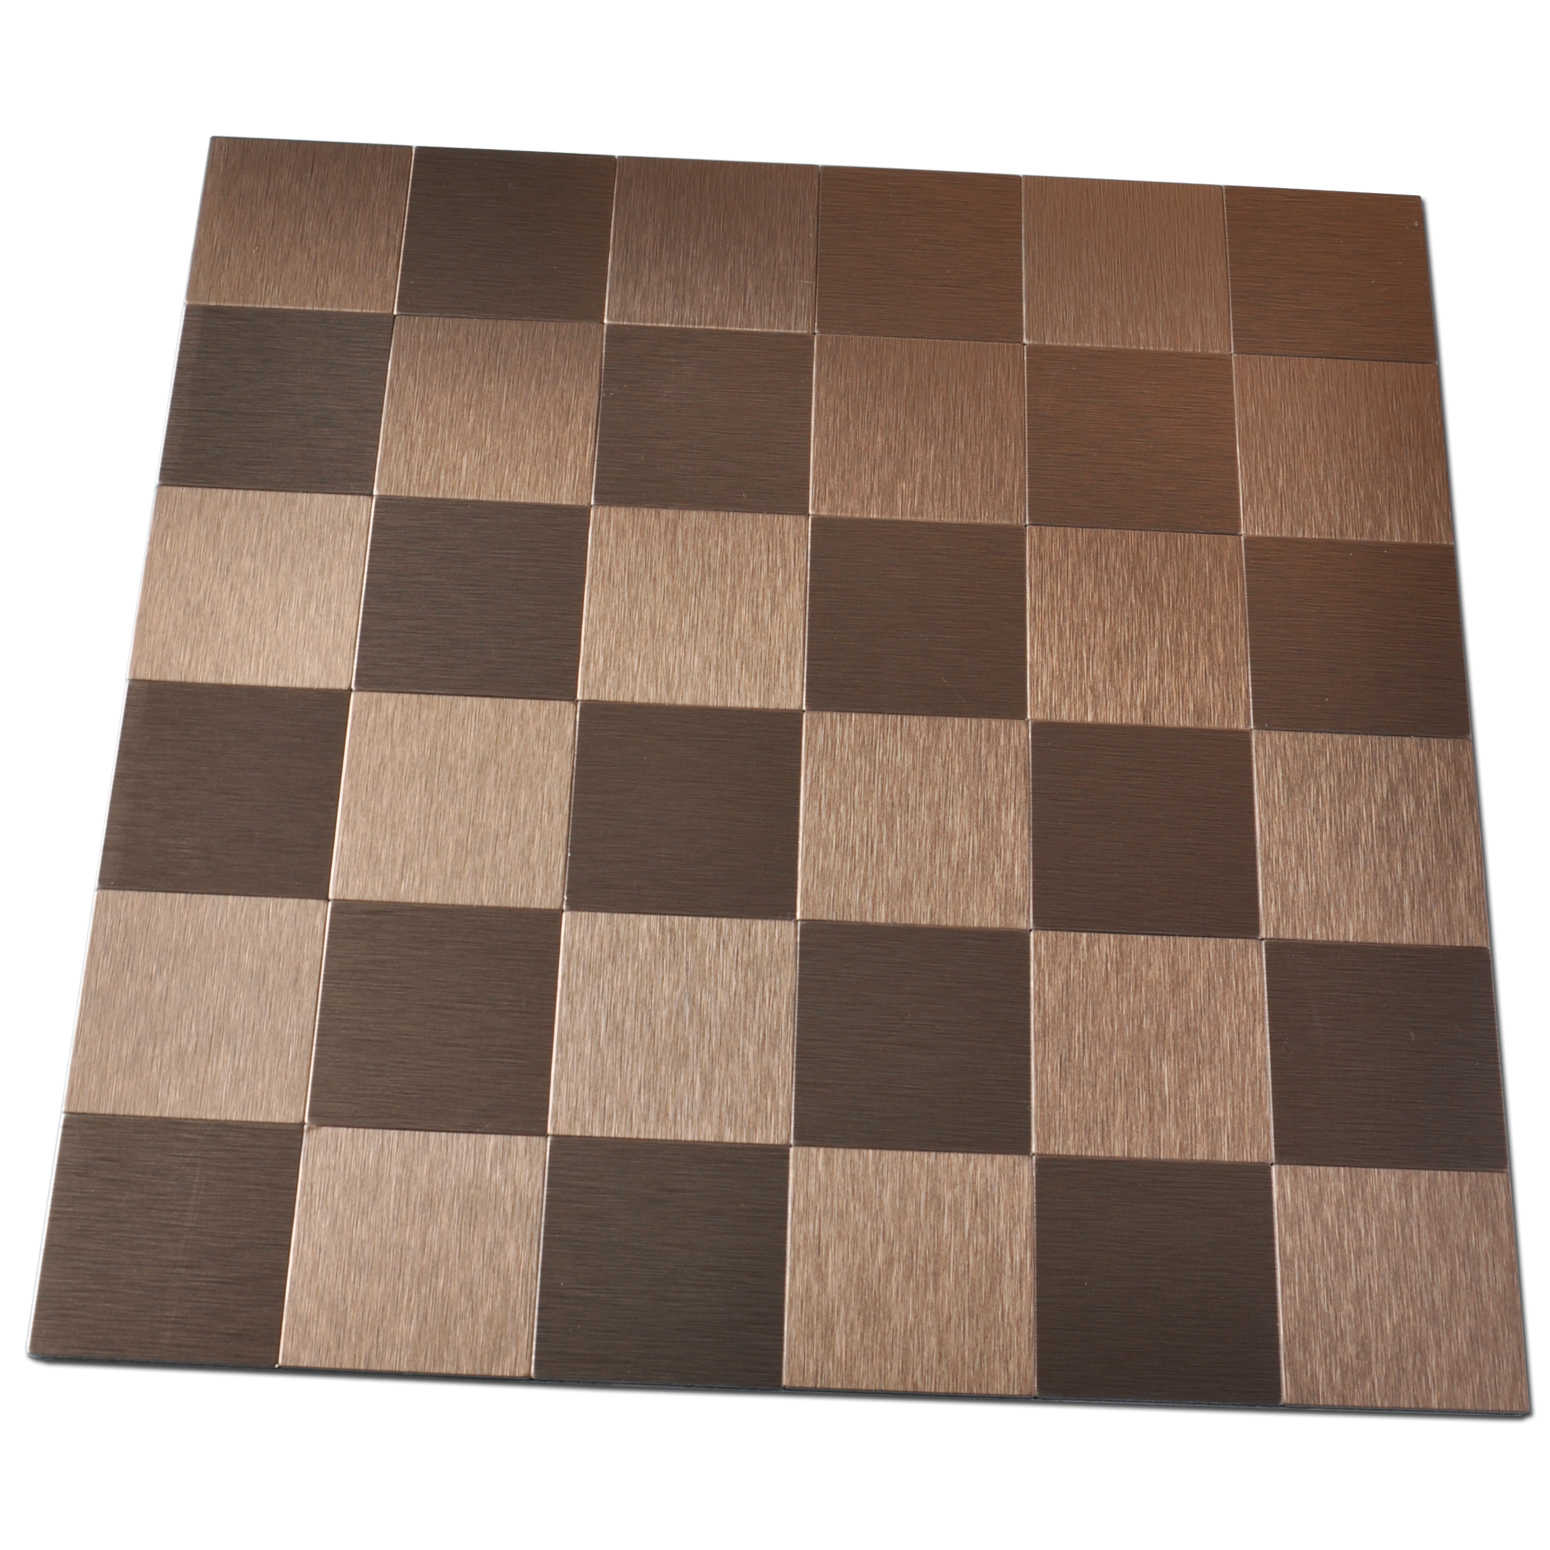 Art3d Peel and Stick Metal Backsplash Peel and Stick Kitchen Tile, 12' x 12' Copper